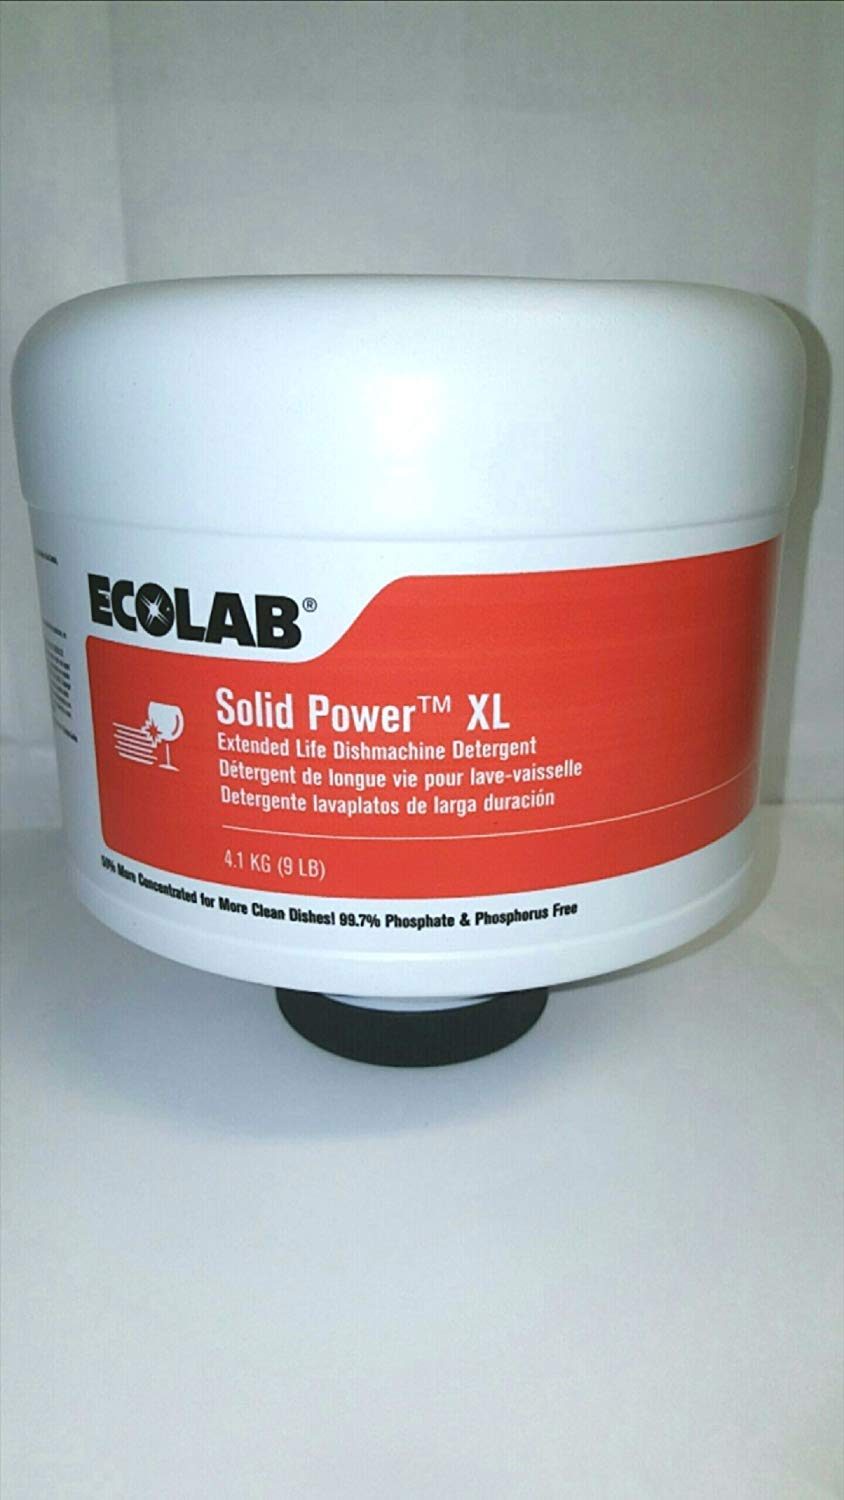 Ecolab Solid Power XL GlassGuard, Industrial-Strength Ecolab Glass Guard Solid Power XL Spotless Detergent -- Don't Disgust Customers with Smears & Food Residue - 4/Case